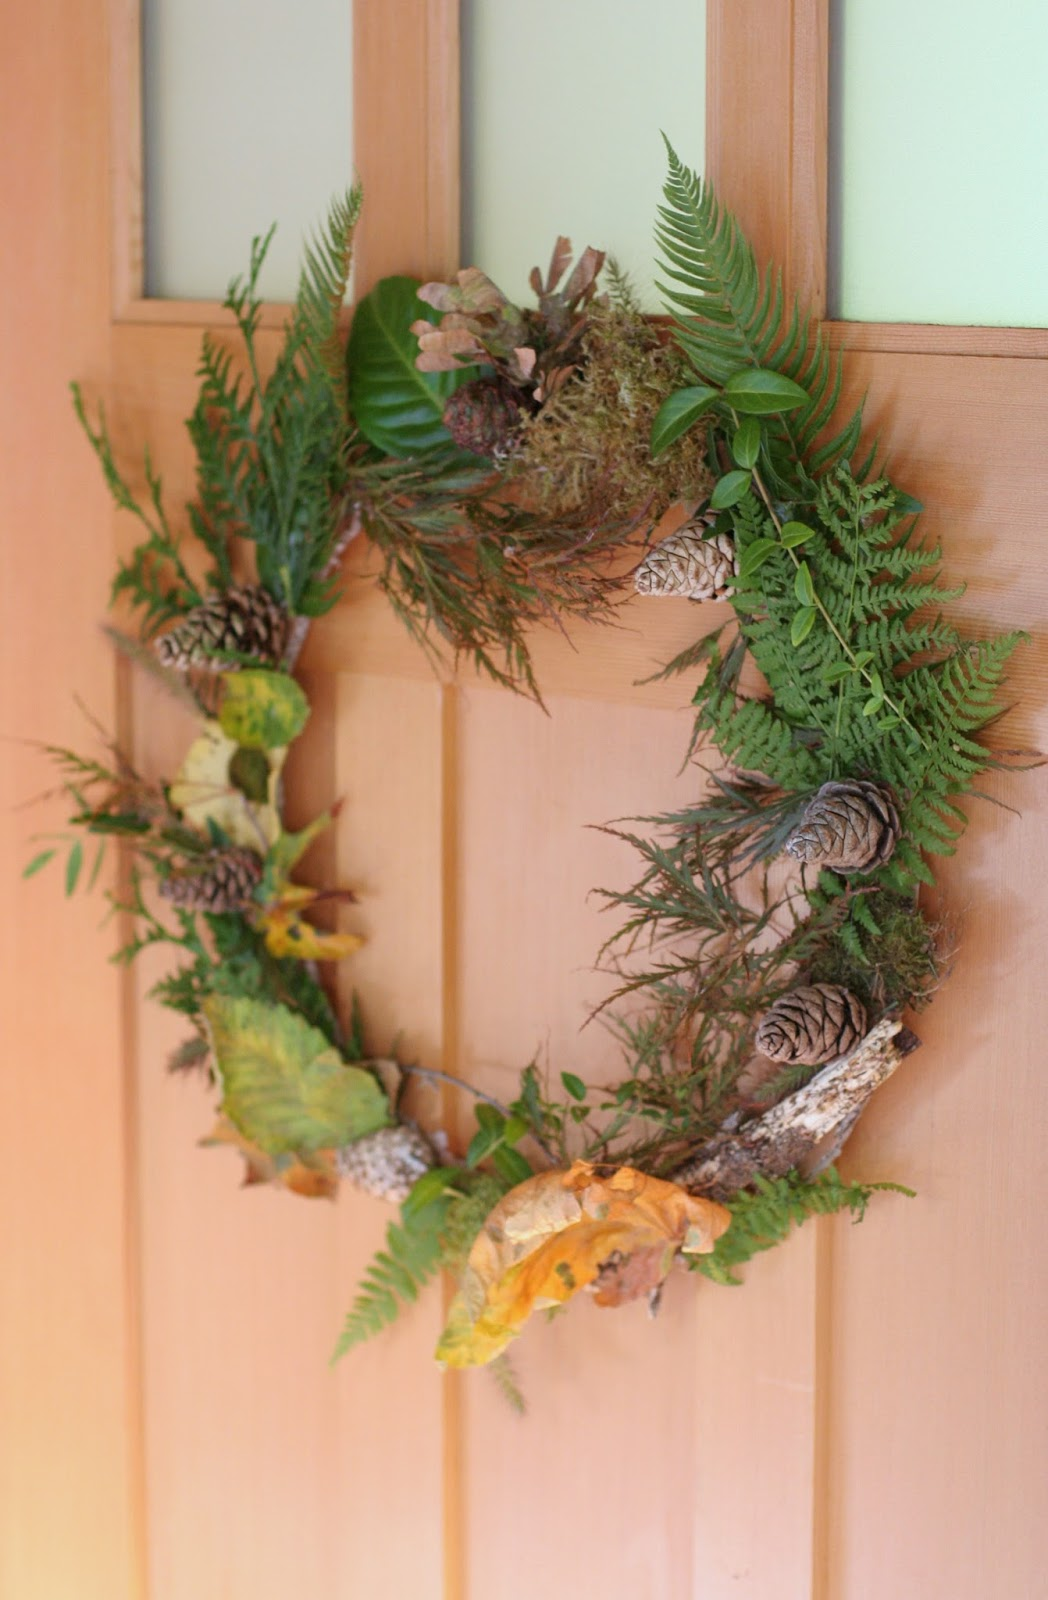 Kid-Made Fall Nature Wreaths made with recycled and natural items!  Quick and easy to make and so beautiful - a 4 year old made this wreath!  From Fun at Home with Kids